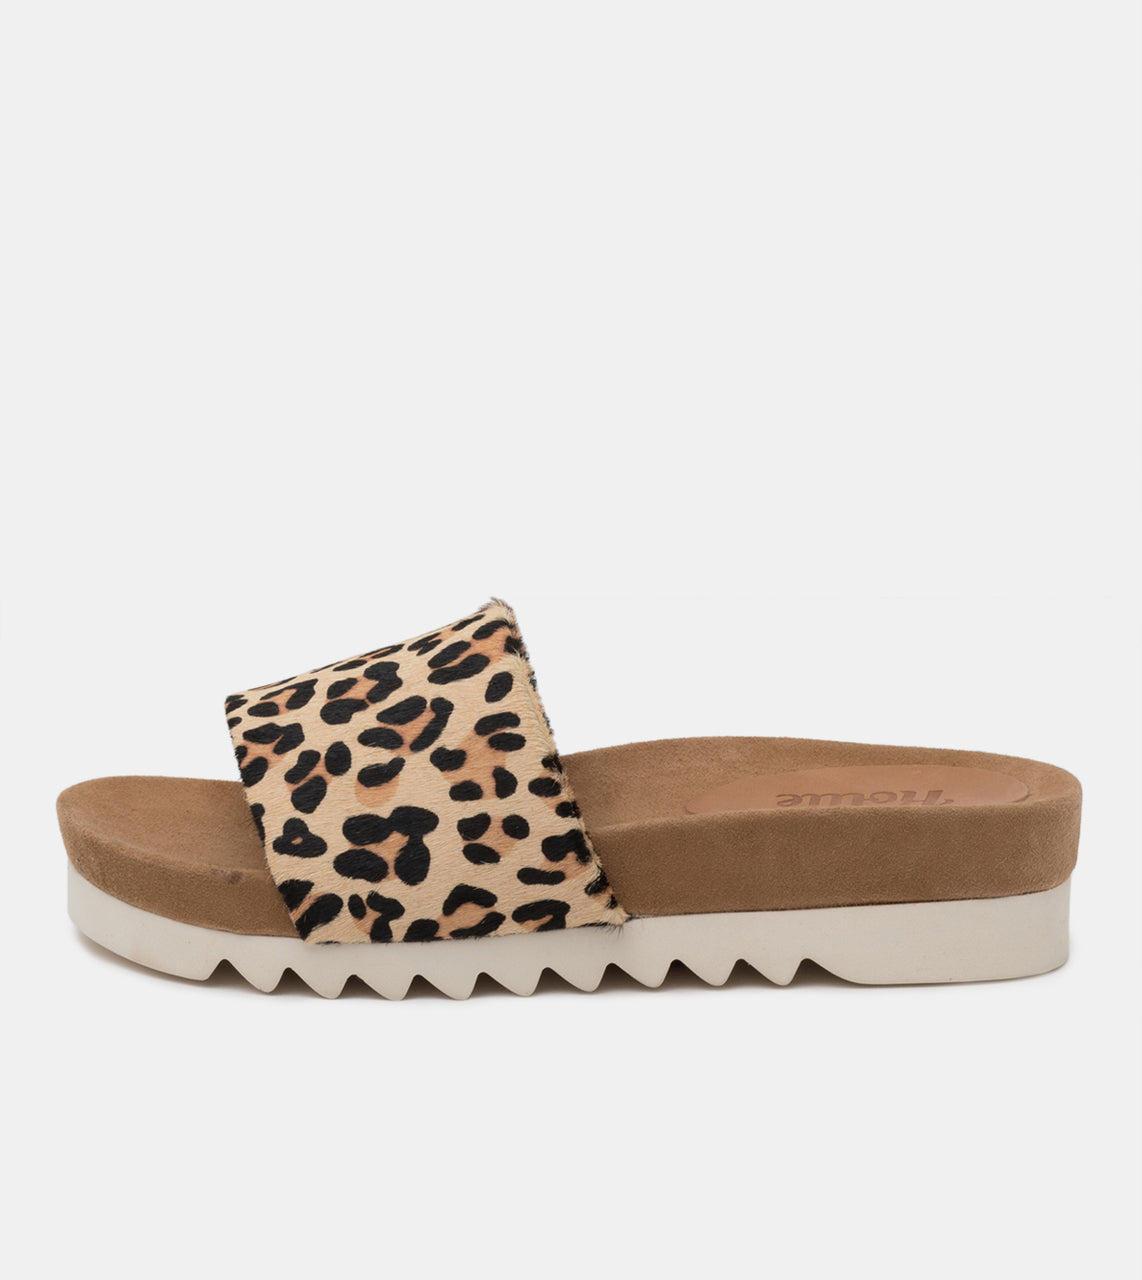 Sandal Slide Tooth Wedge Camel Leopard